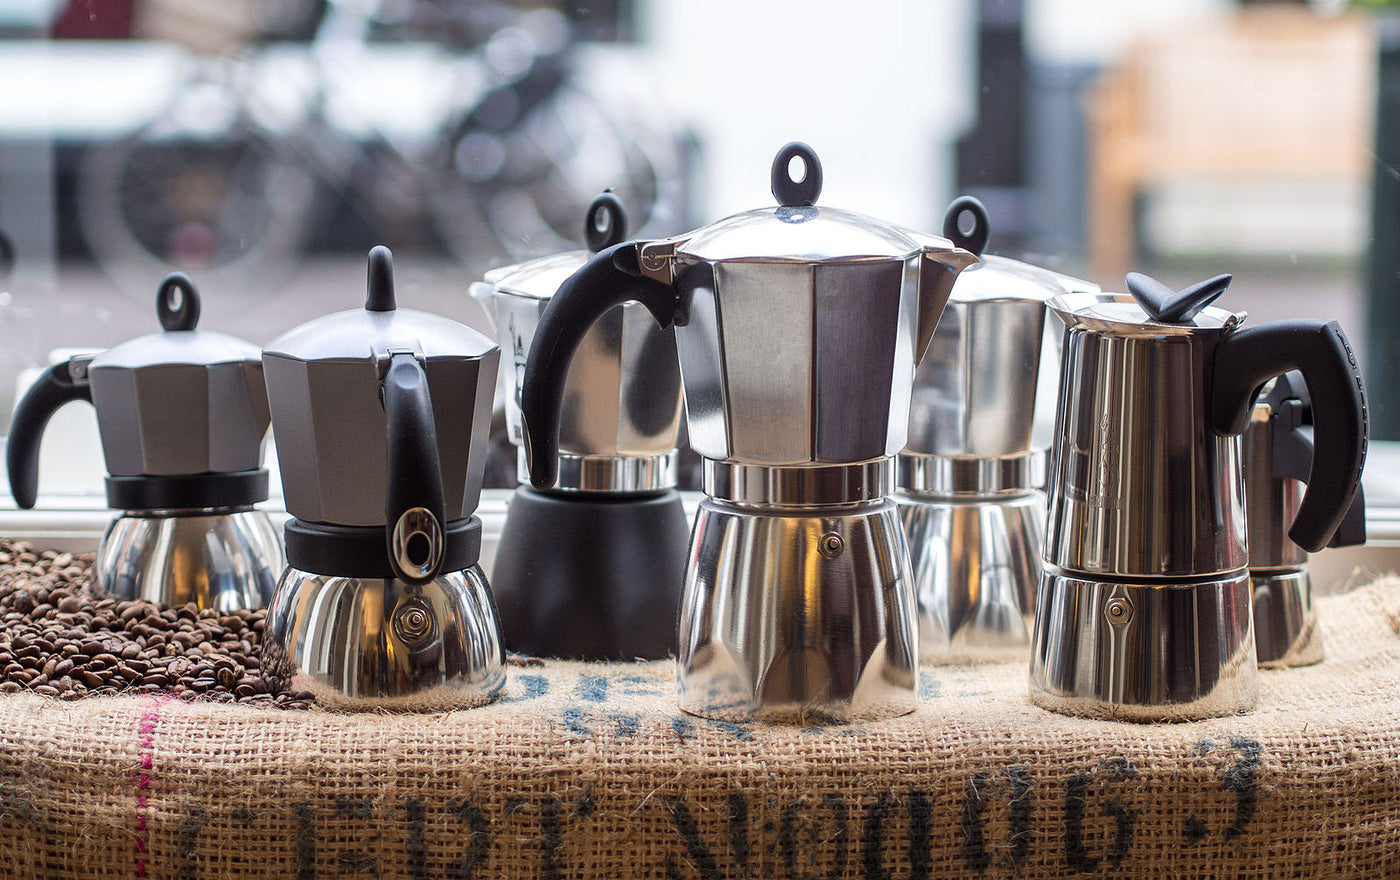 Moka Pots on display at Propeller Specialty Coffee Roasters, Toronto, Ontario, Canada